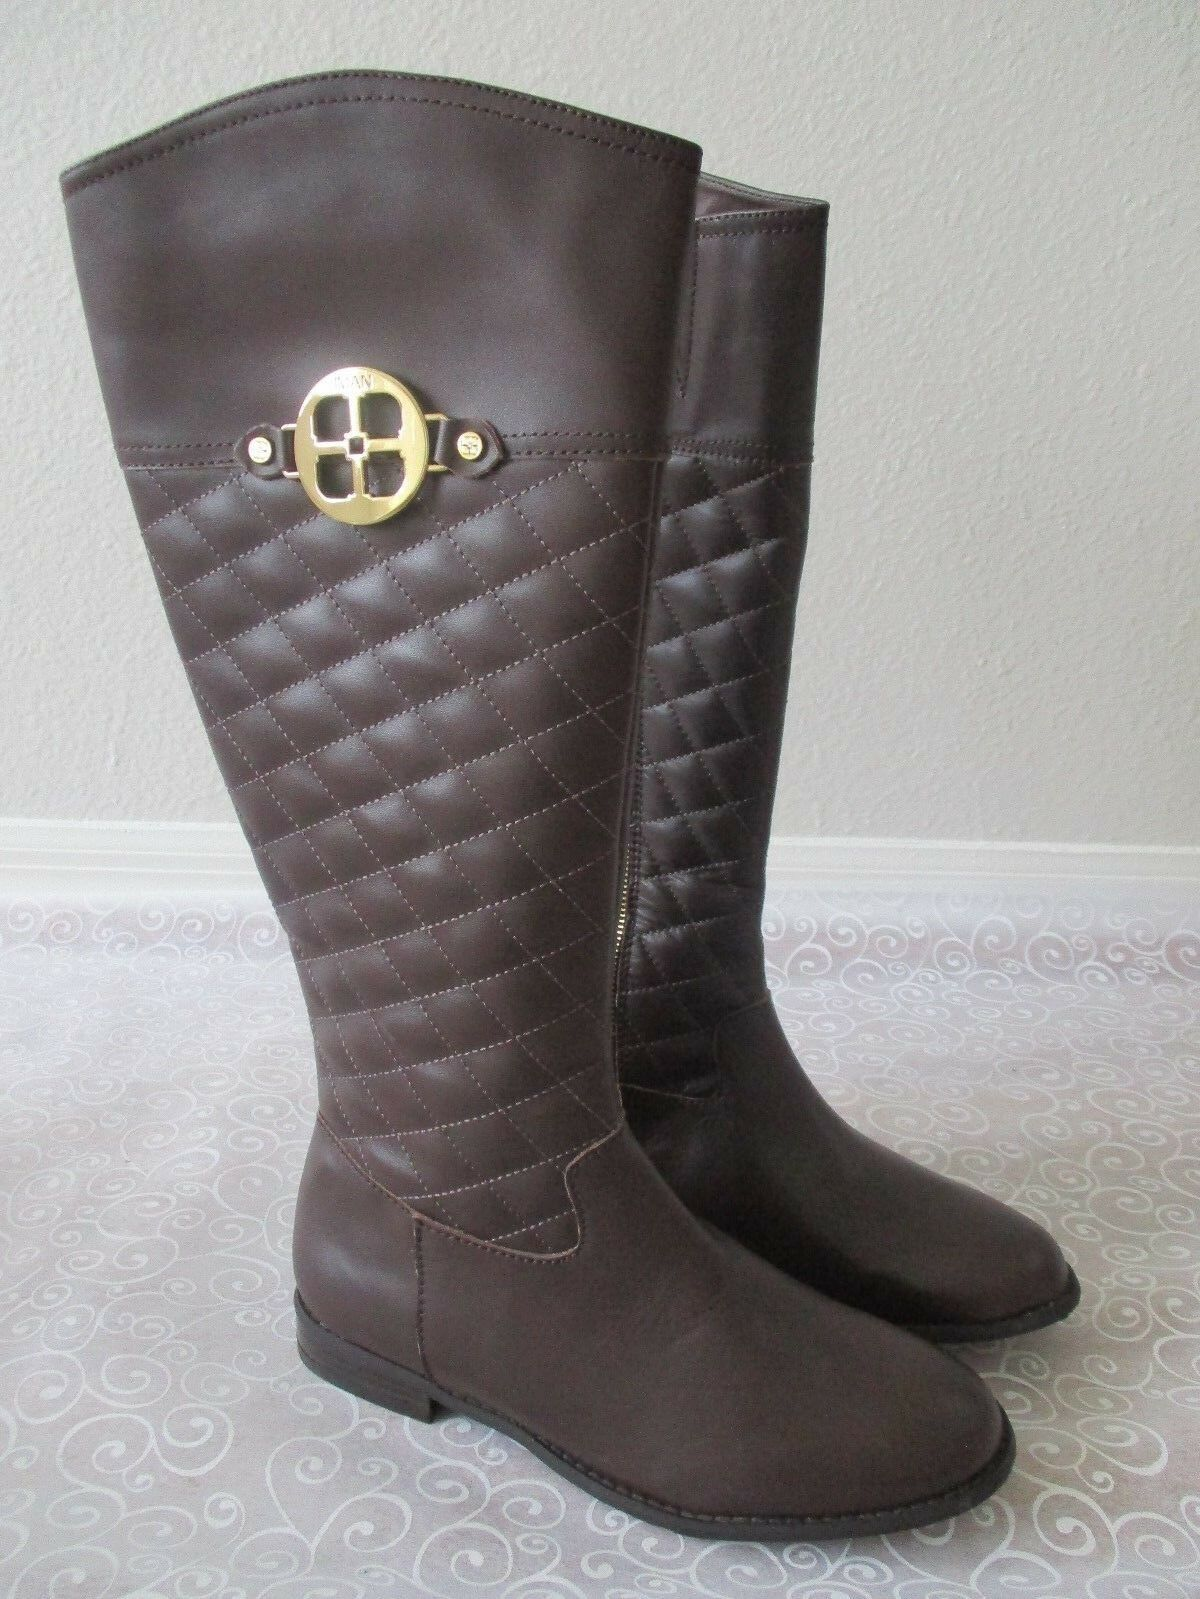 IMAN CHOCOLATE BROWN QUILTED LEATHER KNEE HIGH BOOTS SIZE 9 M - NEW